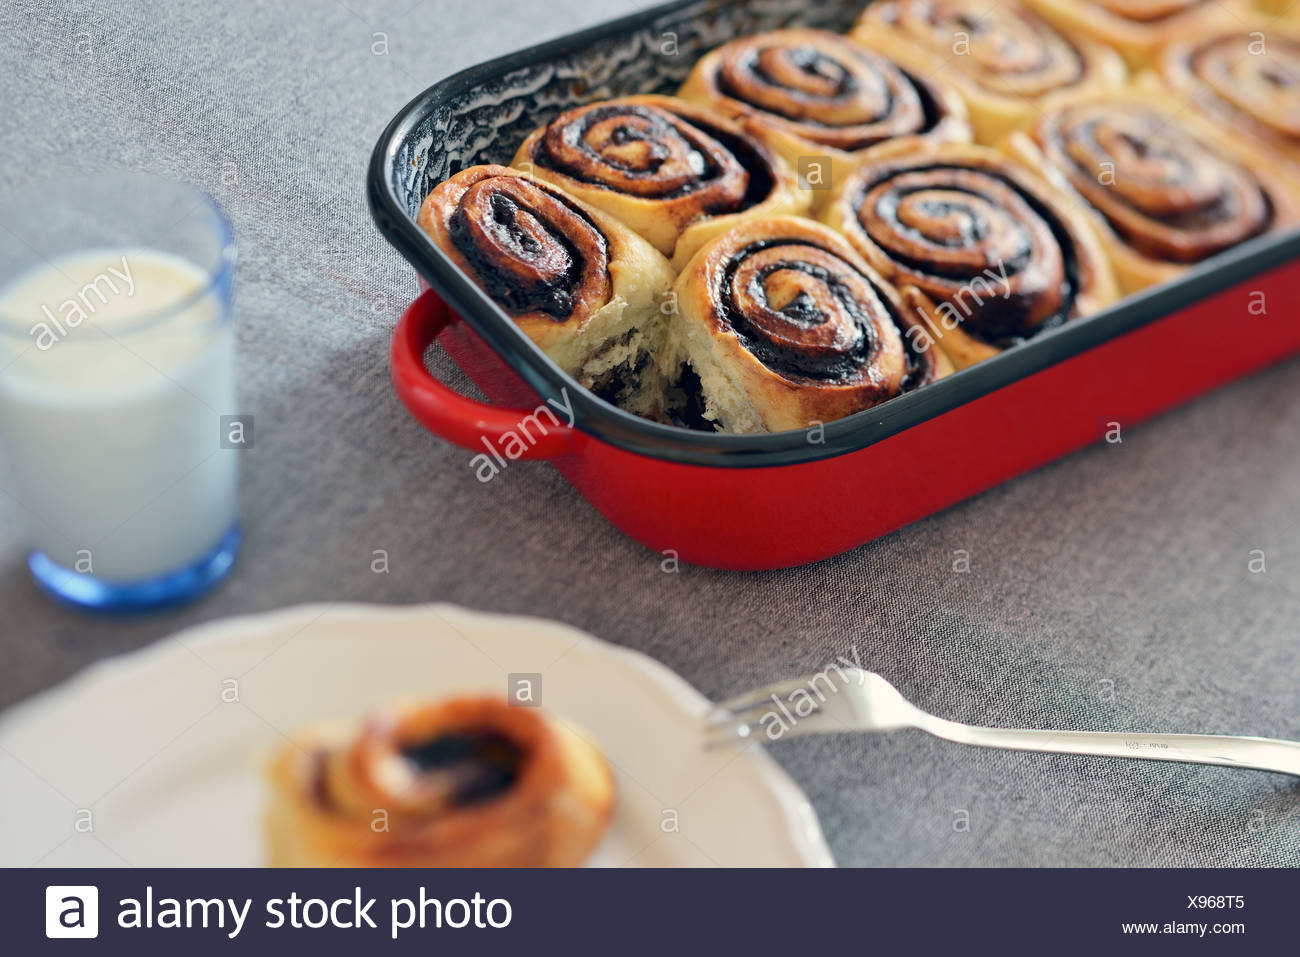 Cocoa sticky buns in casserole dish - Stock Image